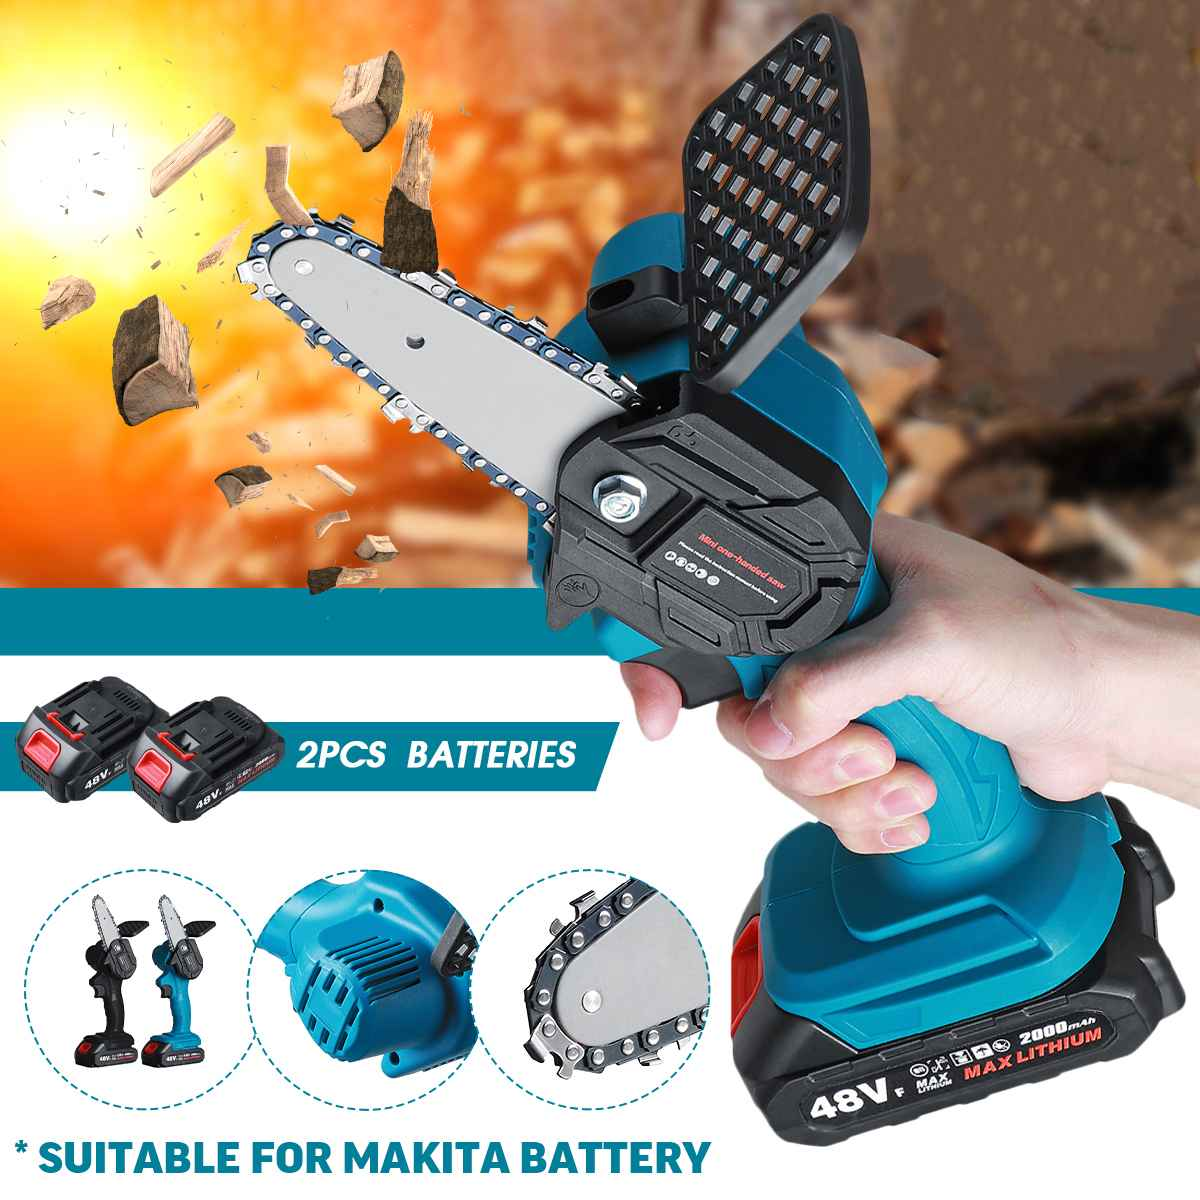 Electric Chain Saw Portable Mini Electric Pruning Saw Rechargeable Woodworking Cutter Tool Garden Logging wit 21V Makita Battery